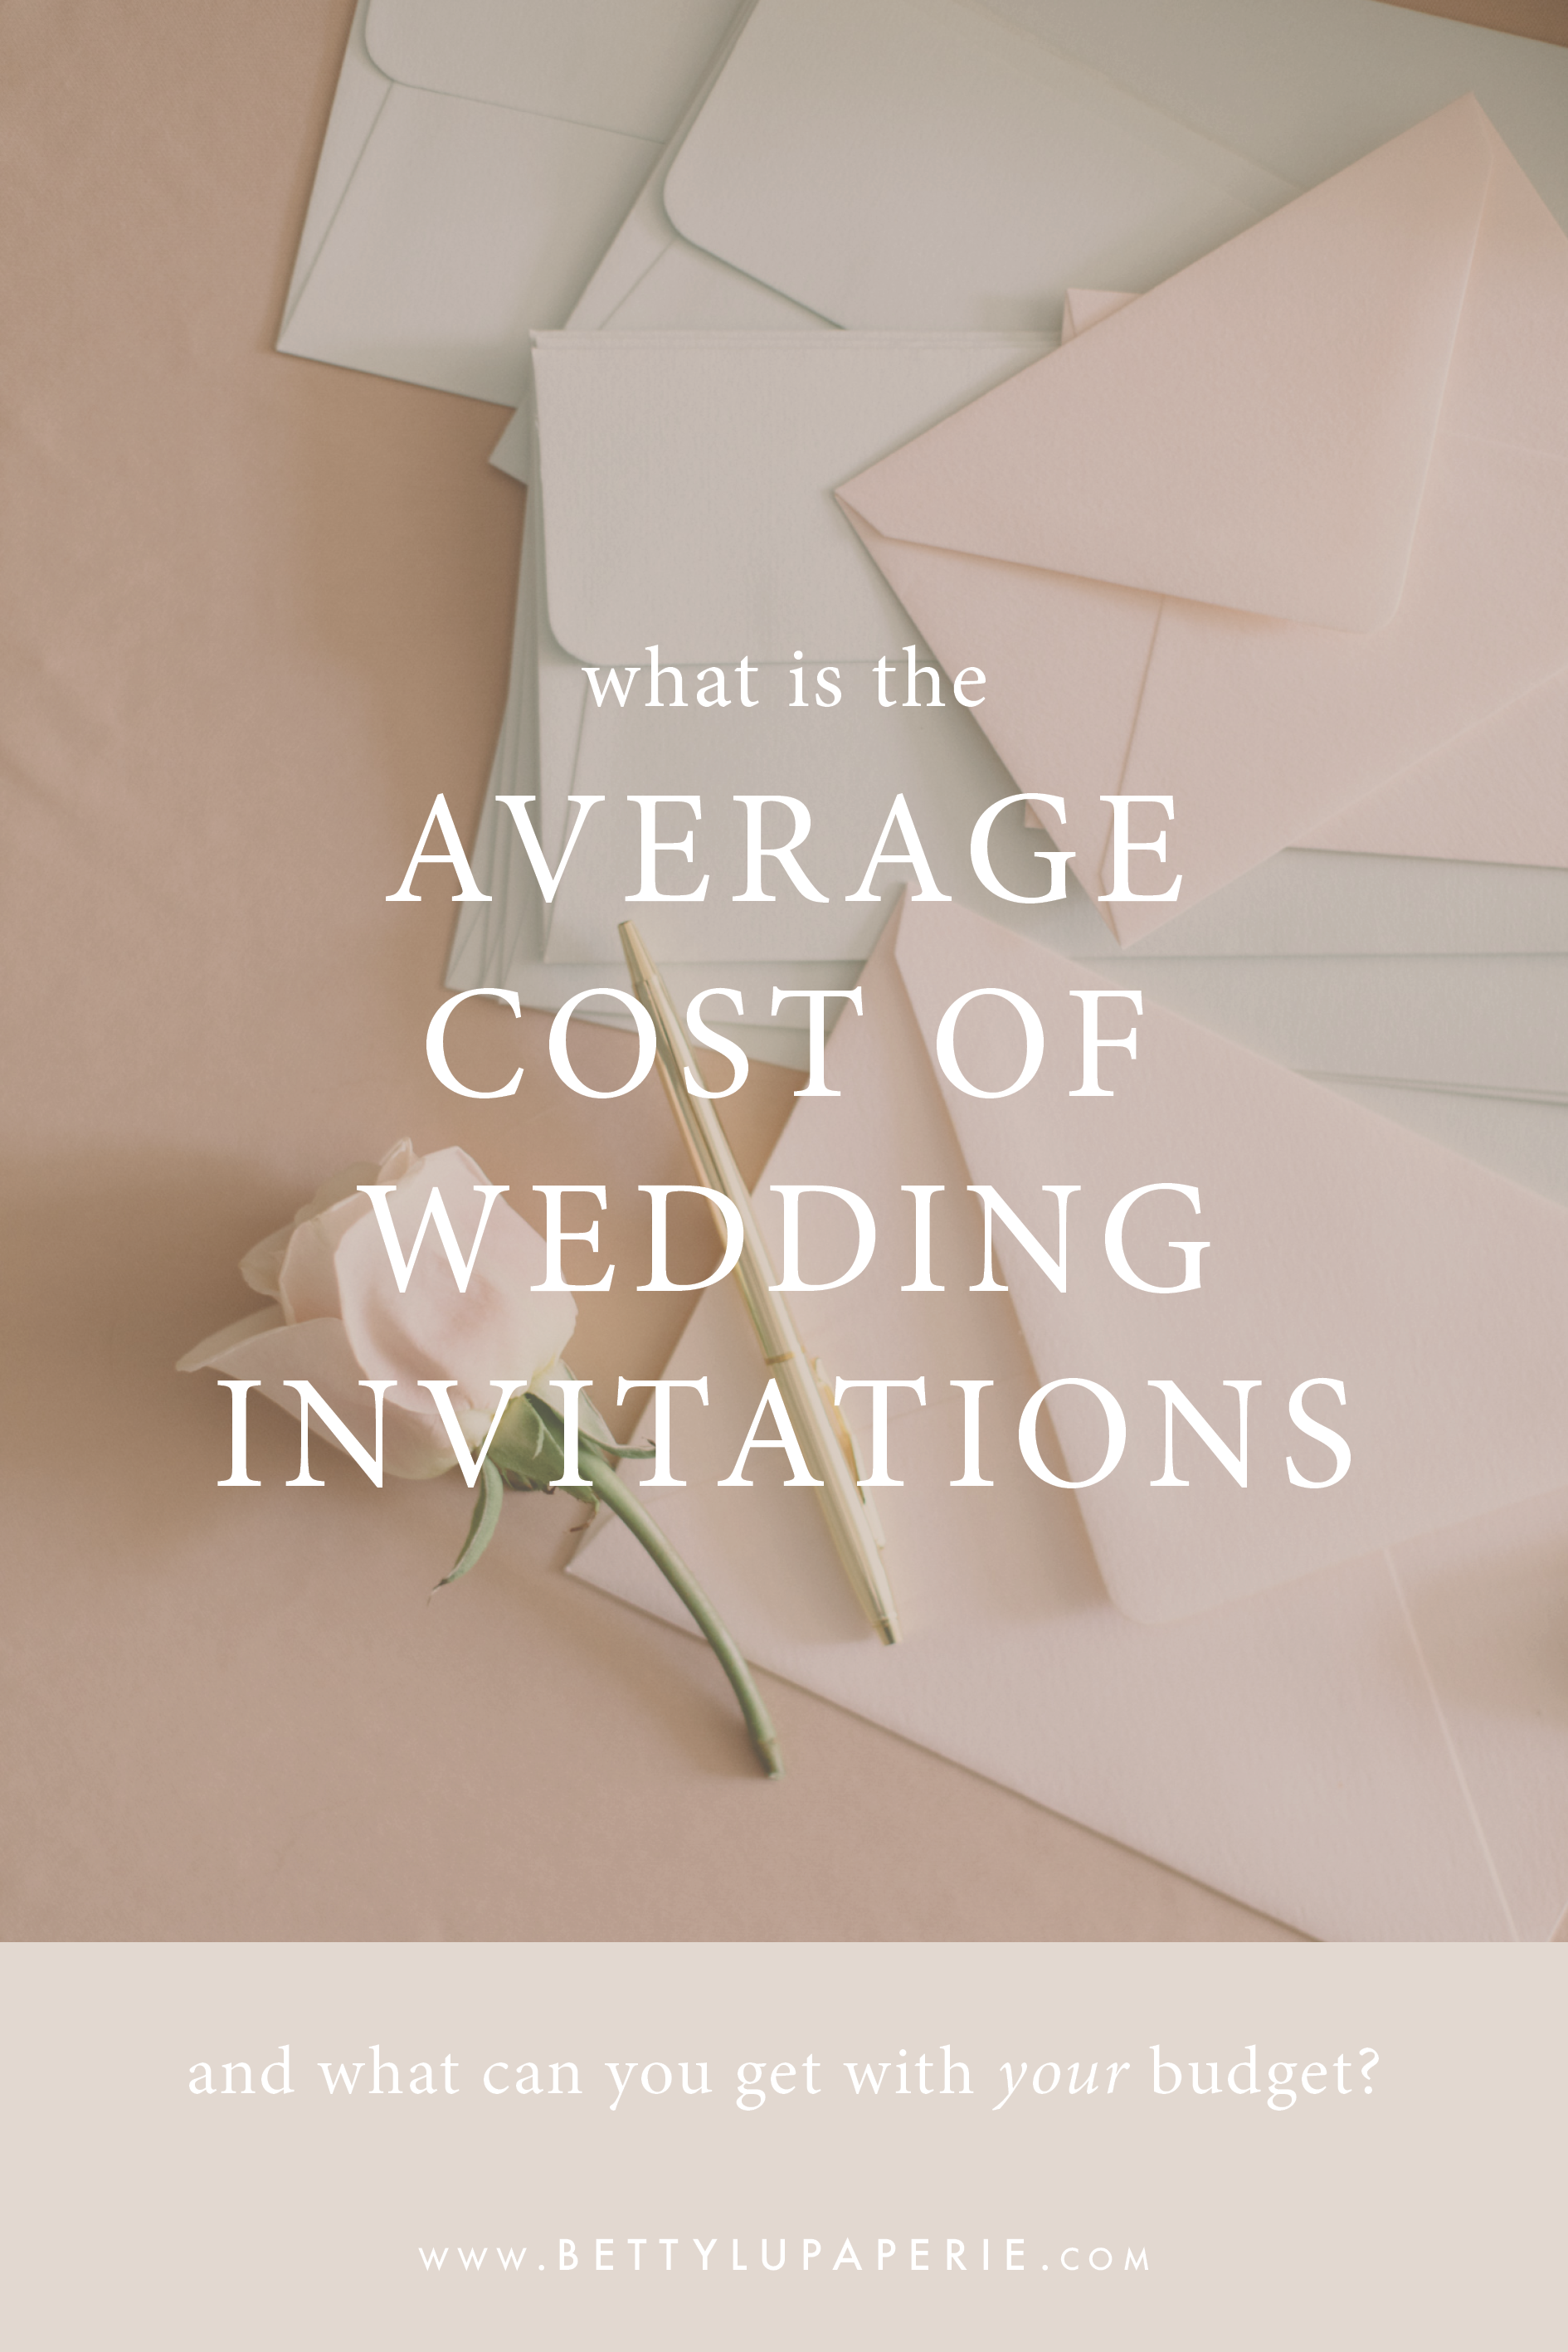 What Is The Average Cost Of Wedding Invitations Floral Wedding Invitations From Betty Lu Paperie Wedding Costs Floral Wedding Invitations Wedding Planning Tips